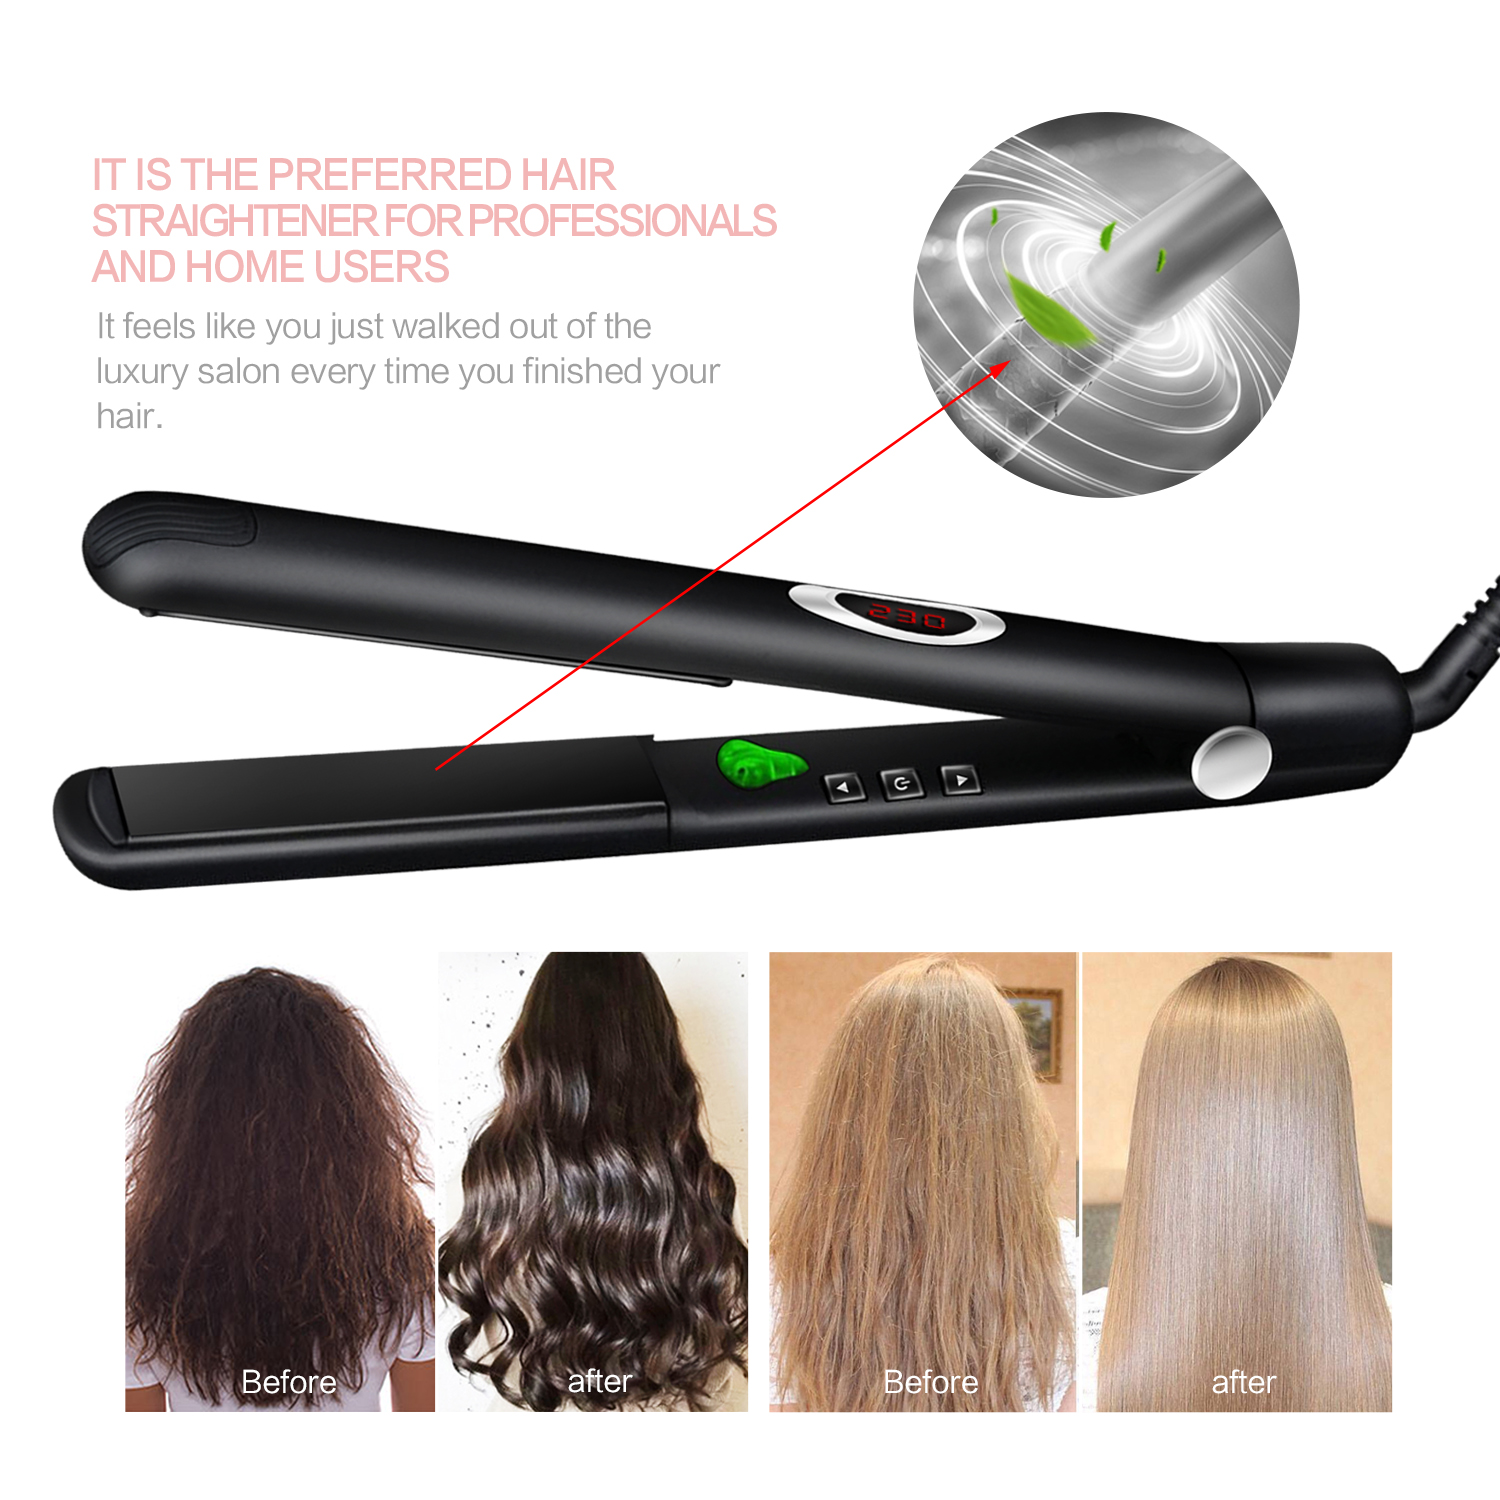 Professional Flat Iron Ionic Infrared Straight Hair Ceramic Hair Straightening & Curling Iron Salon Hair Curler Styling Tool